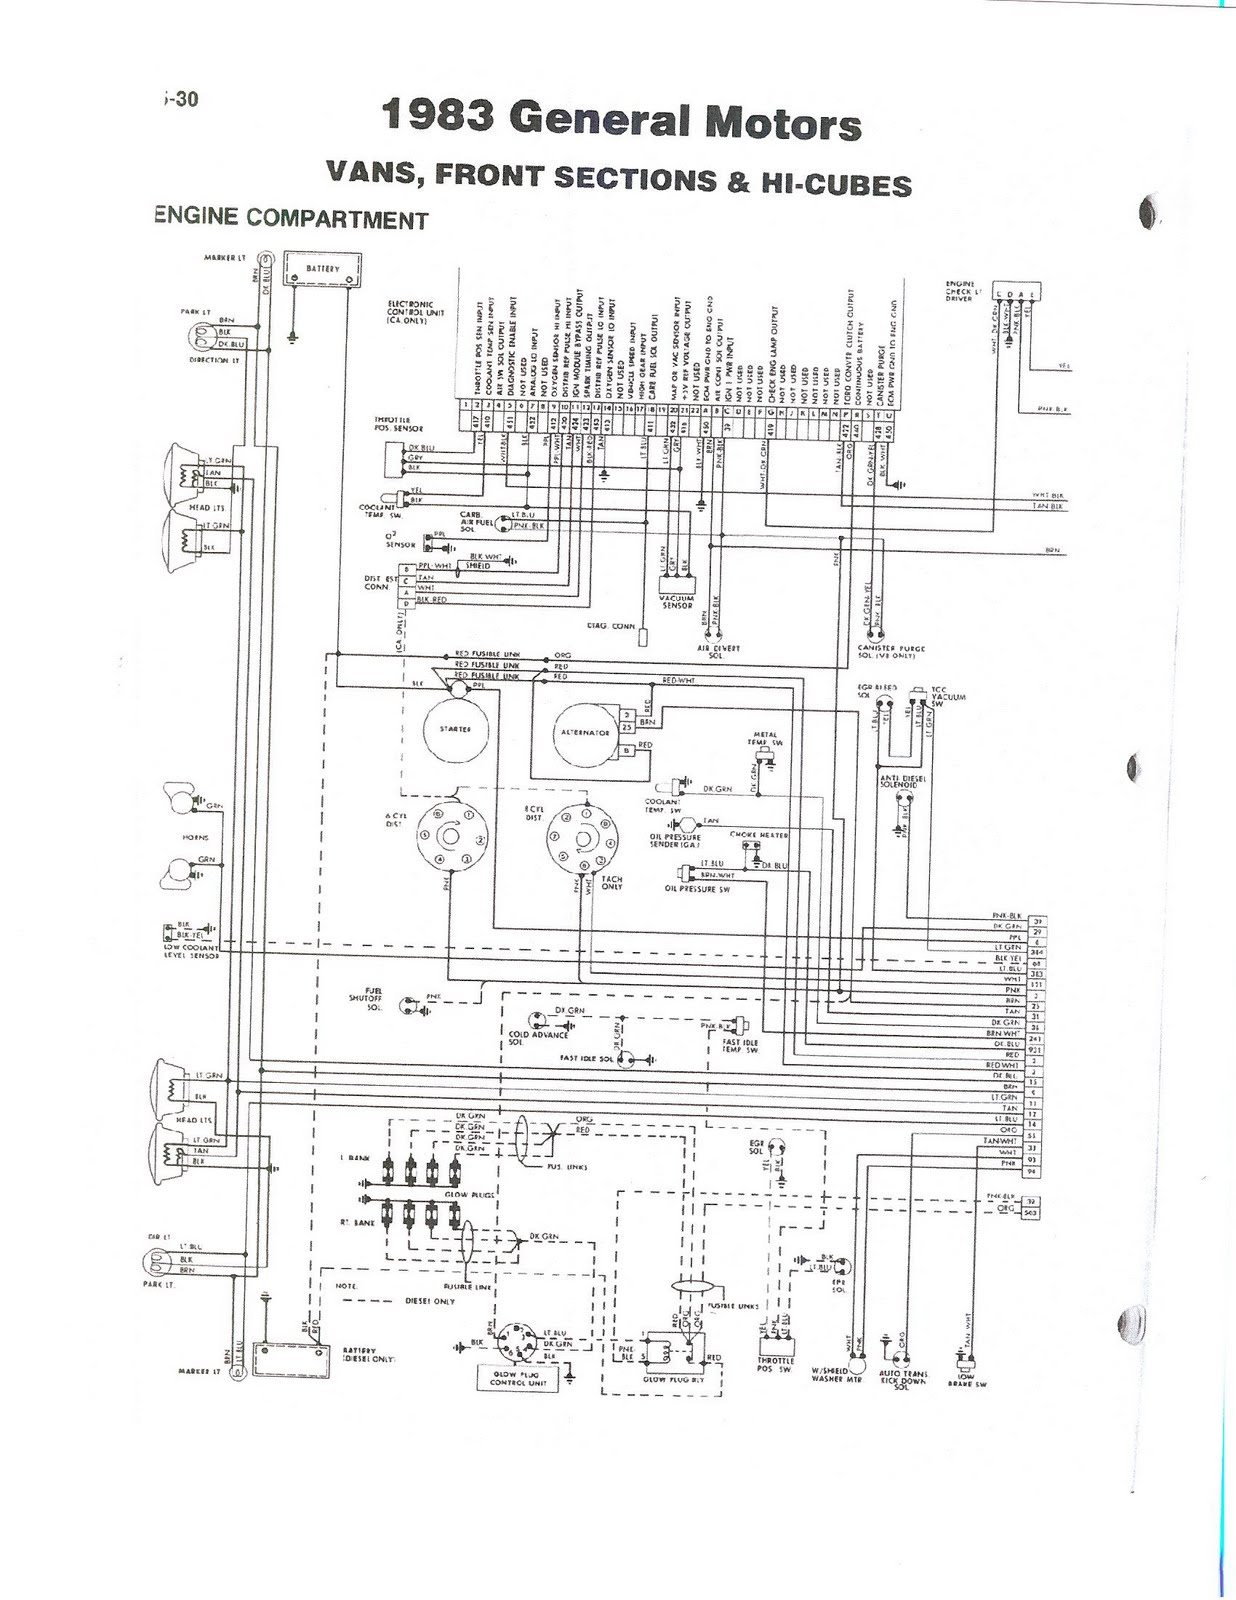 1985 skylark wiring diagram for a camper